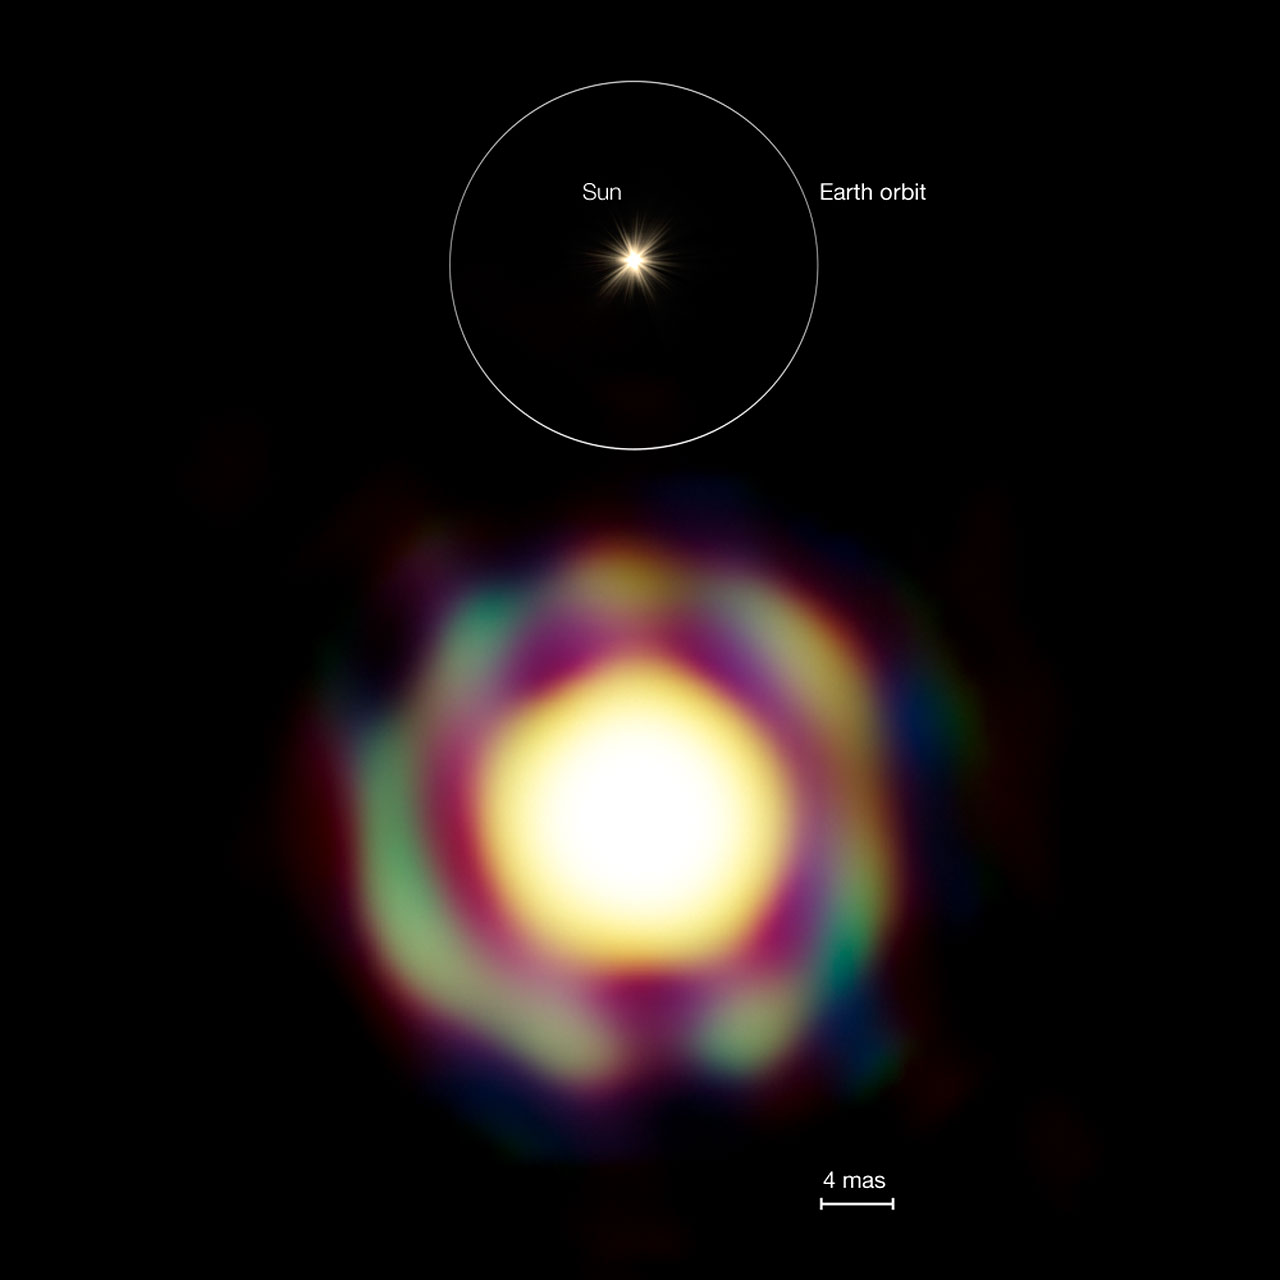 The Star T Leporis to Scale